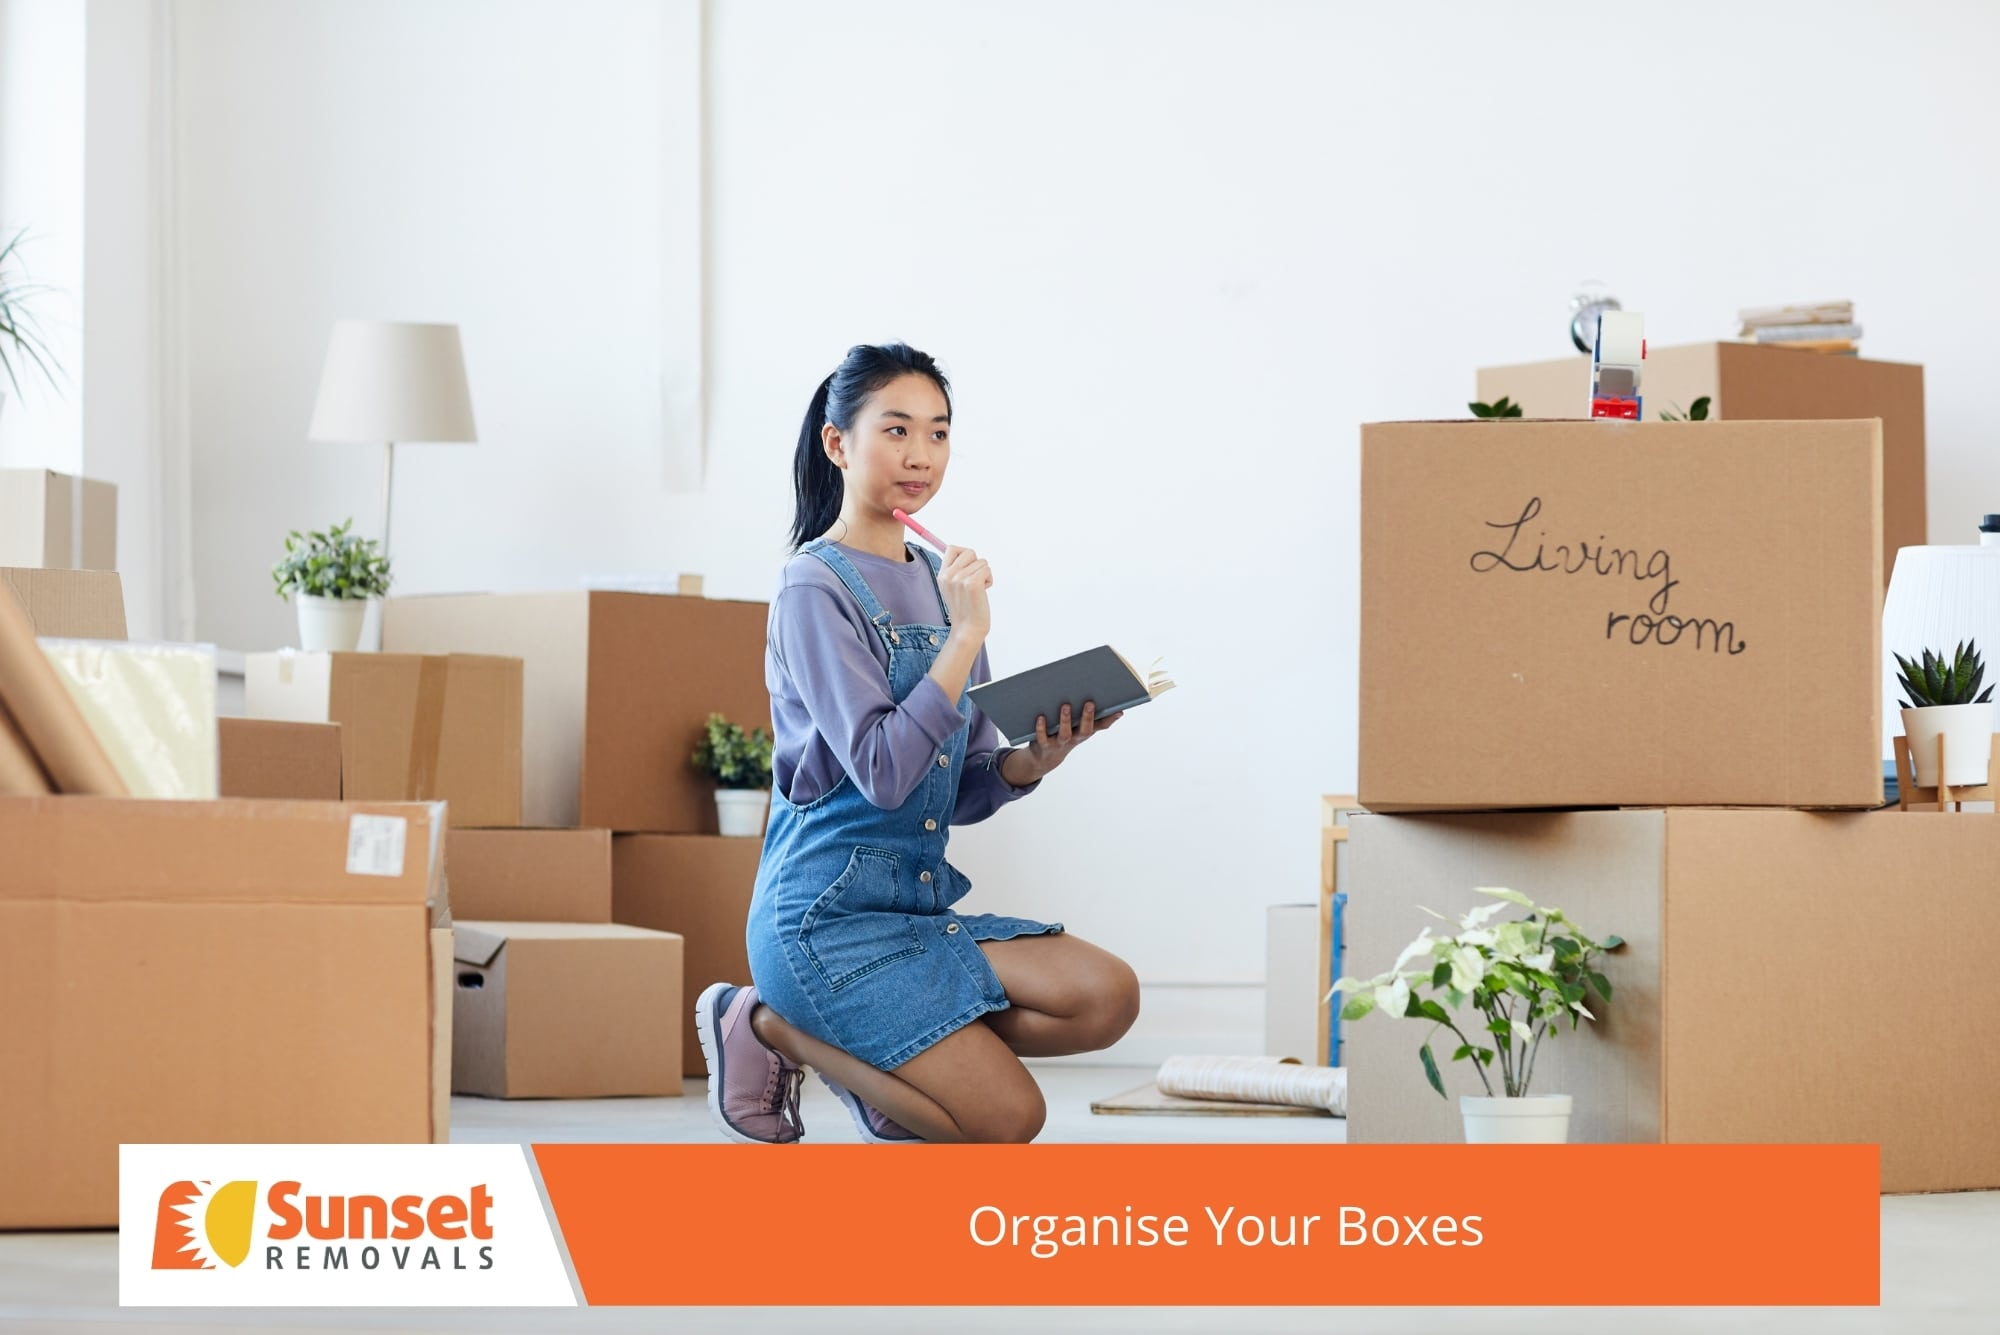 Organise Your Boxes